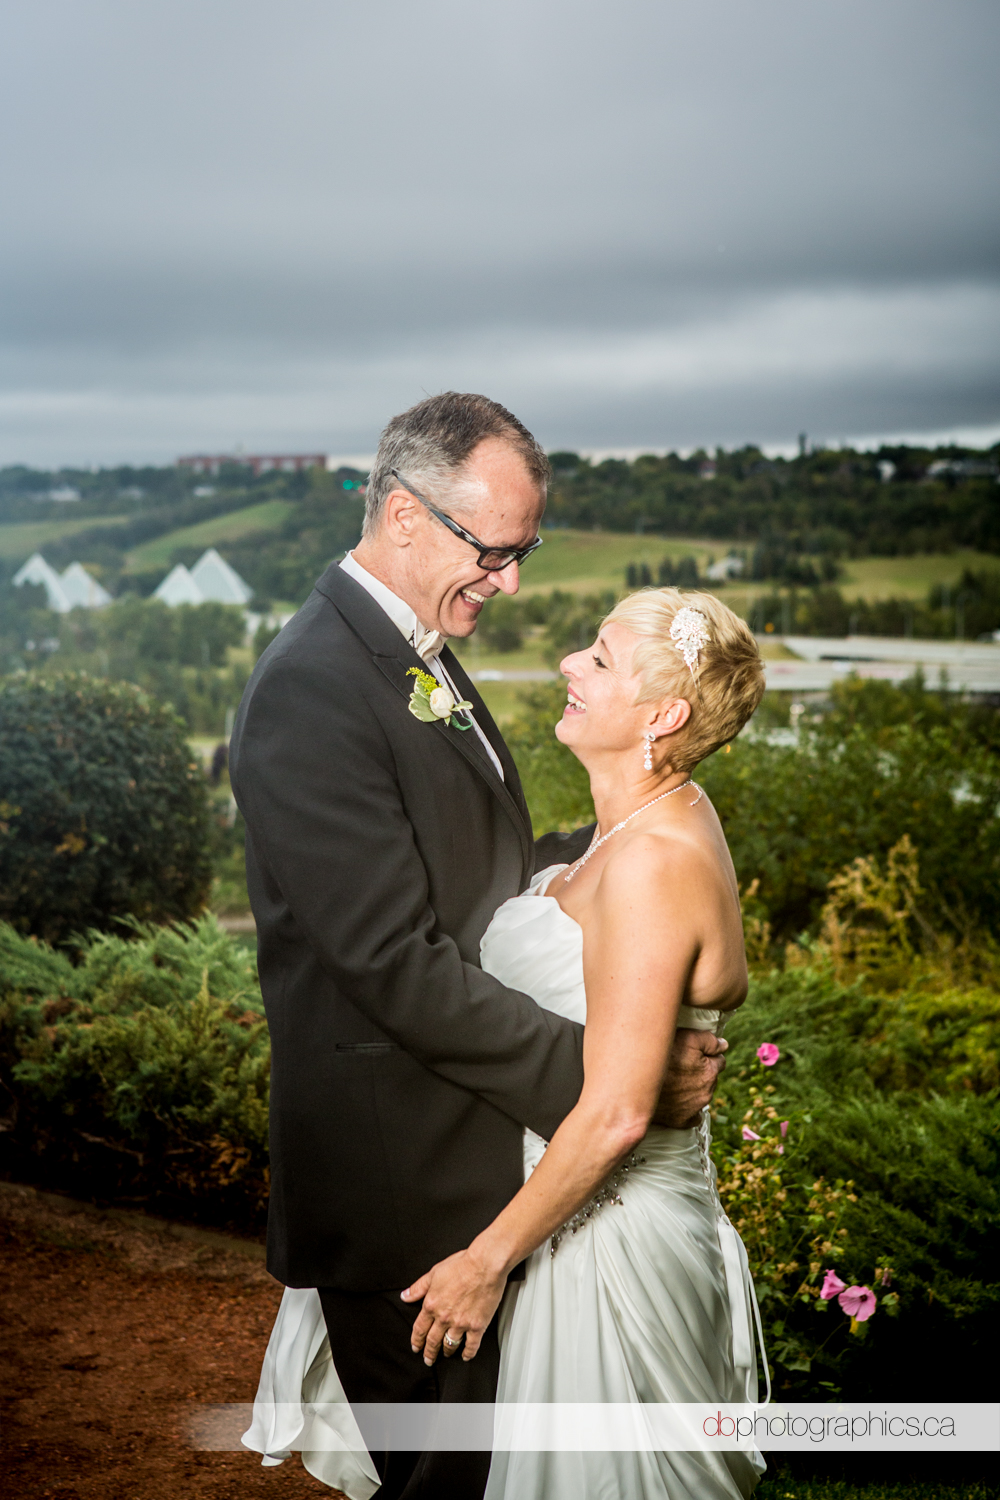 Chris & Sue - 20140907 - 0268.jpg